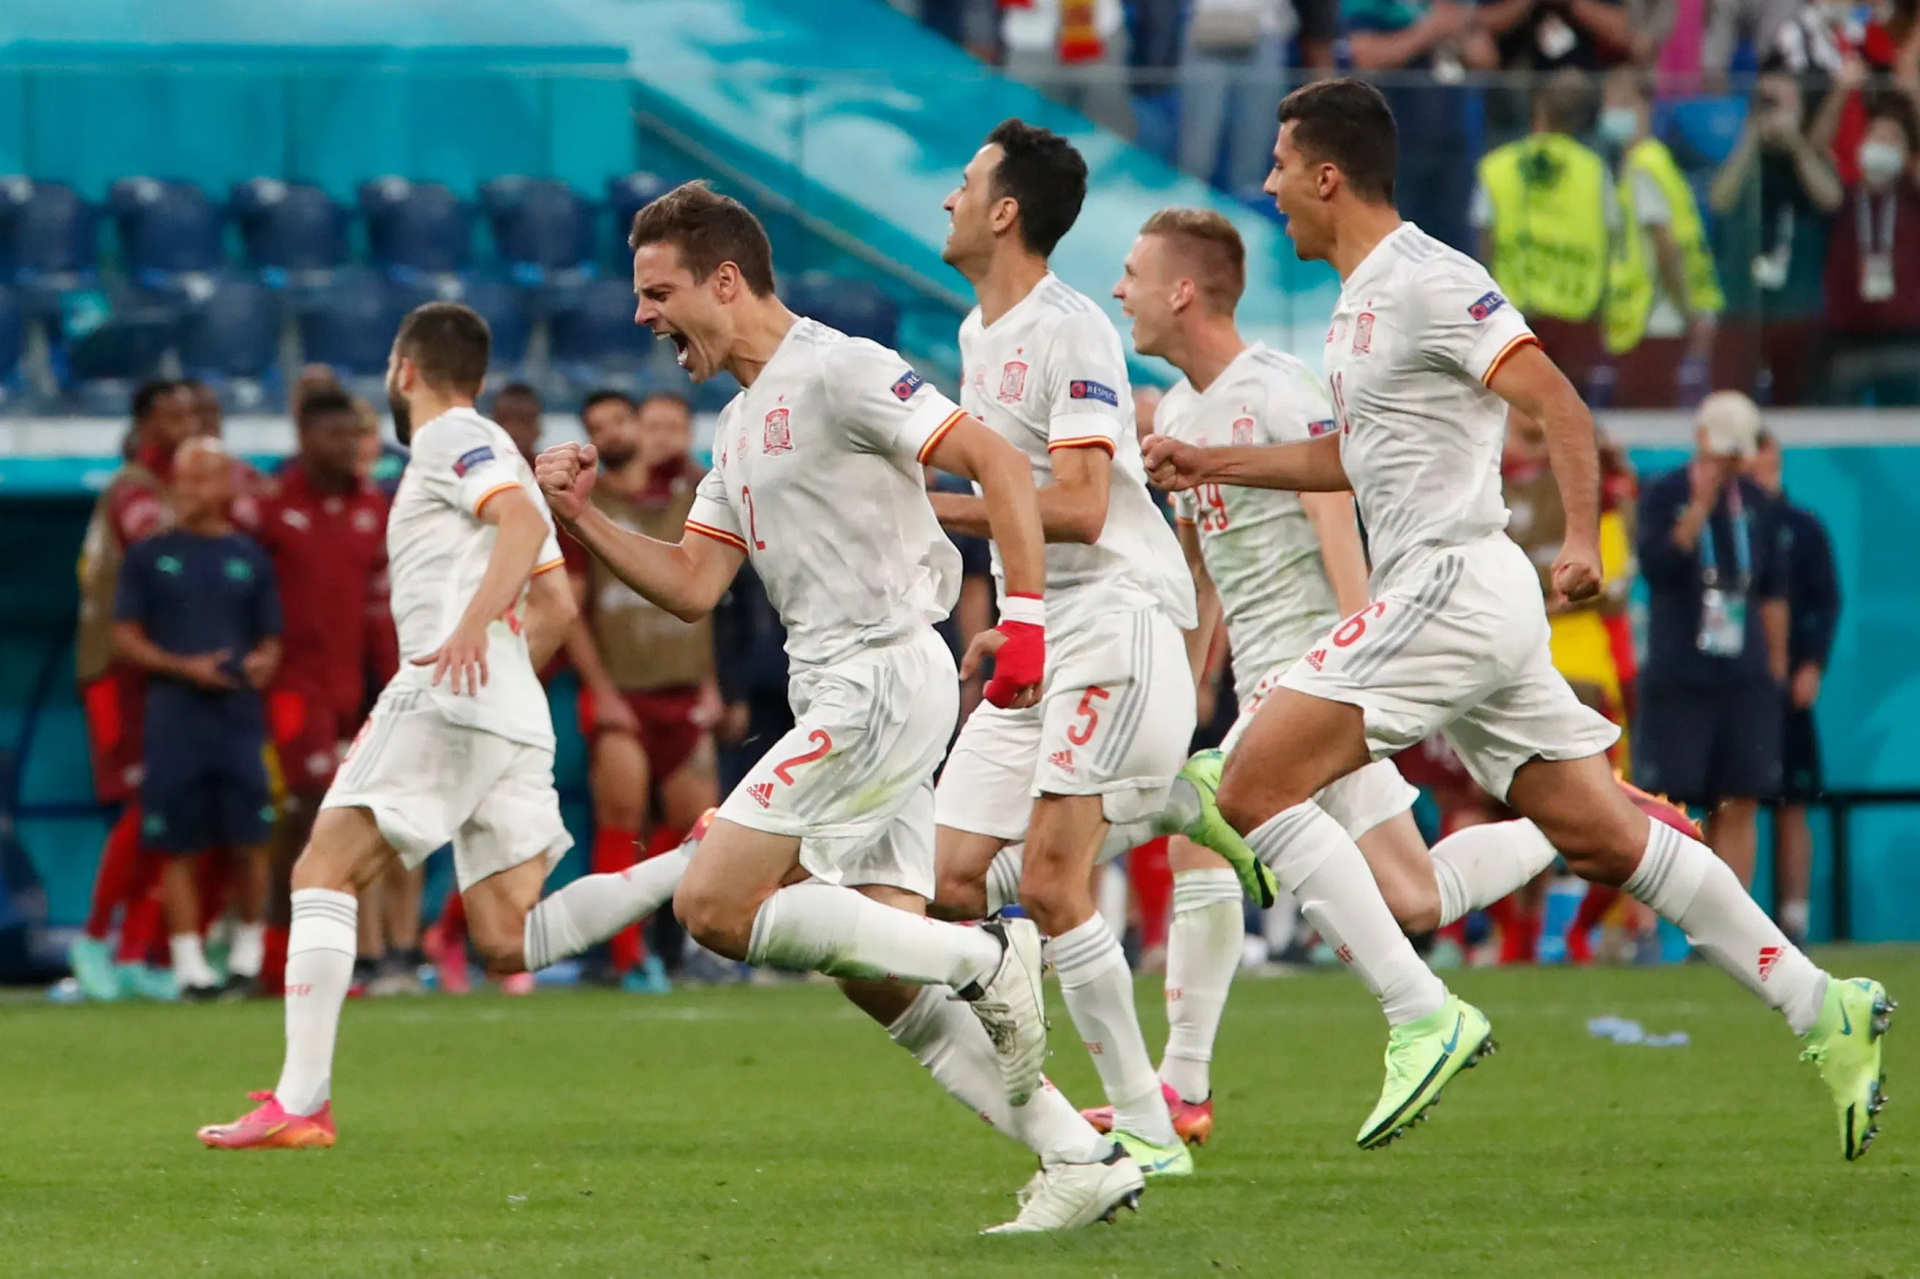 Spain vs Italy Semi-finals (July 6): Fixtures, Match schedule, TV channels, Live Stream